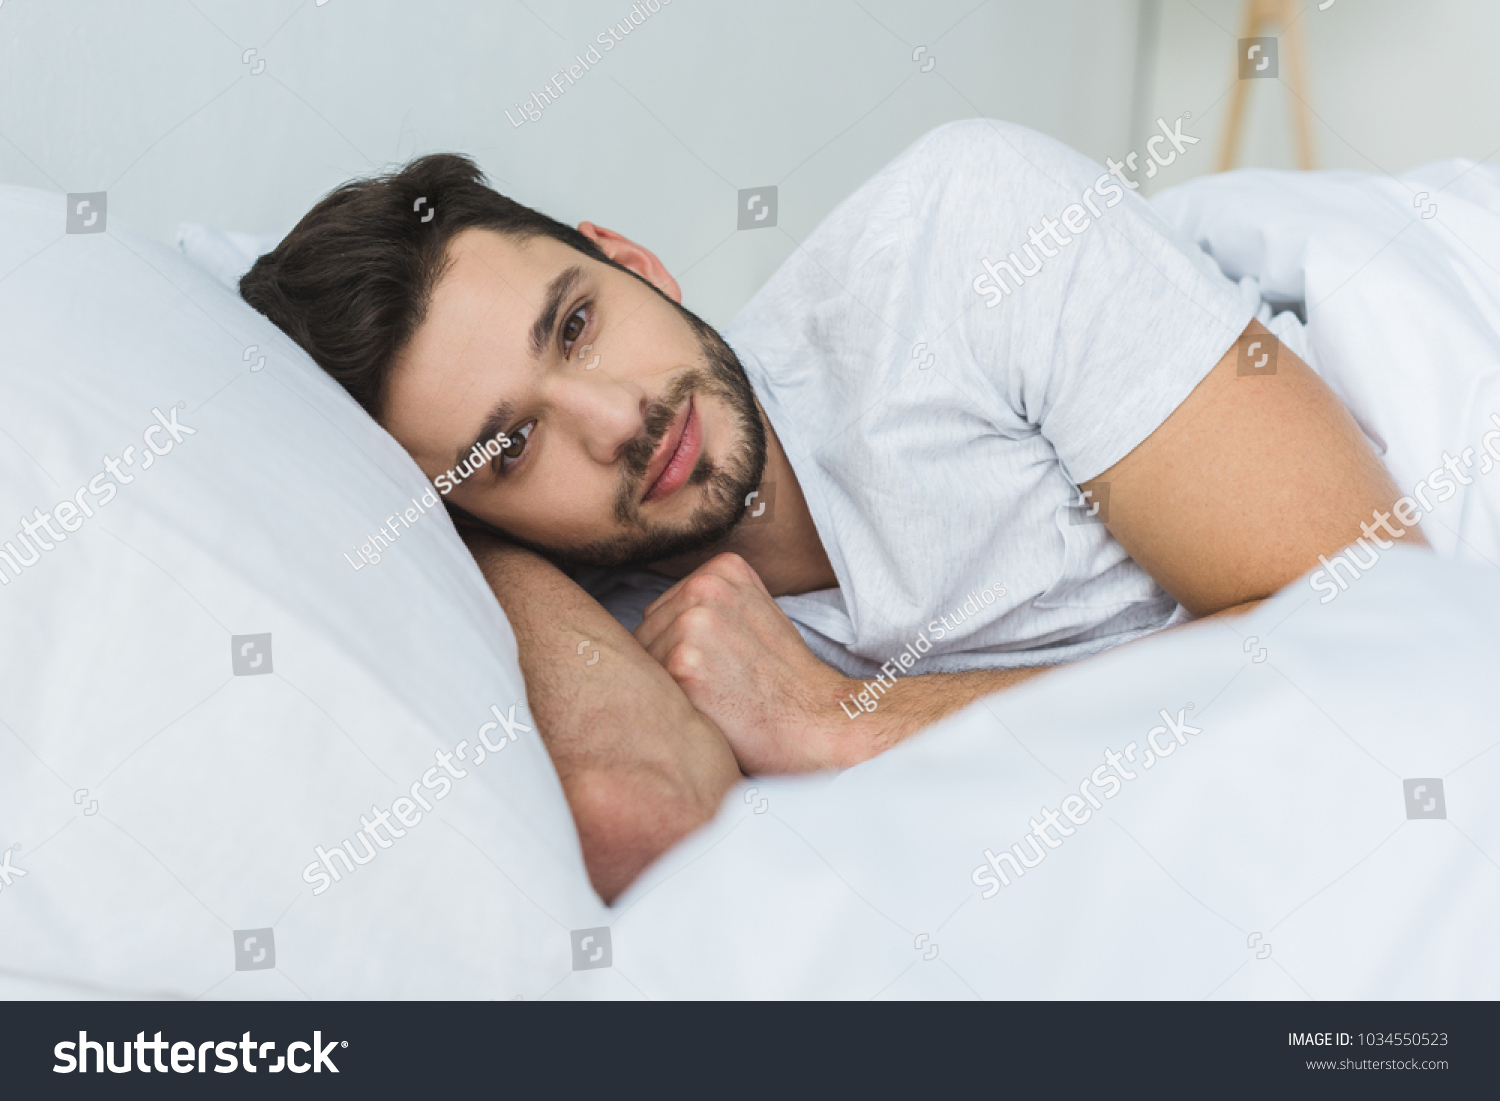 stock-photo-handsome-man-lying-on-bed-and-looking-at-camera-in-the-morning-1034550523.jpg